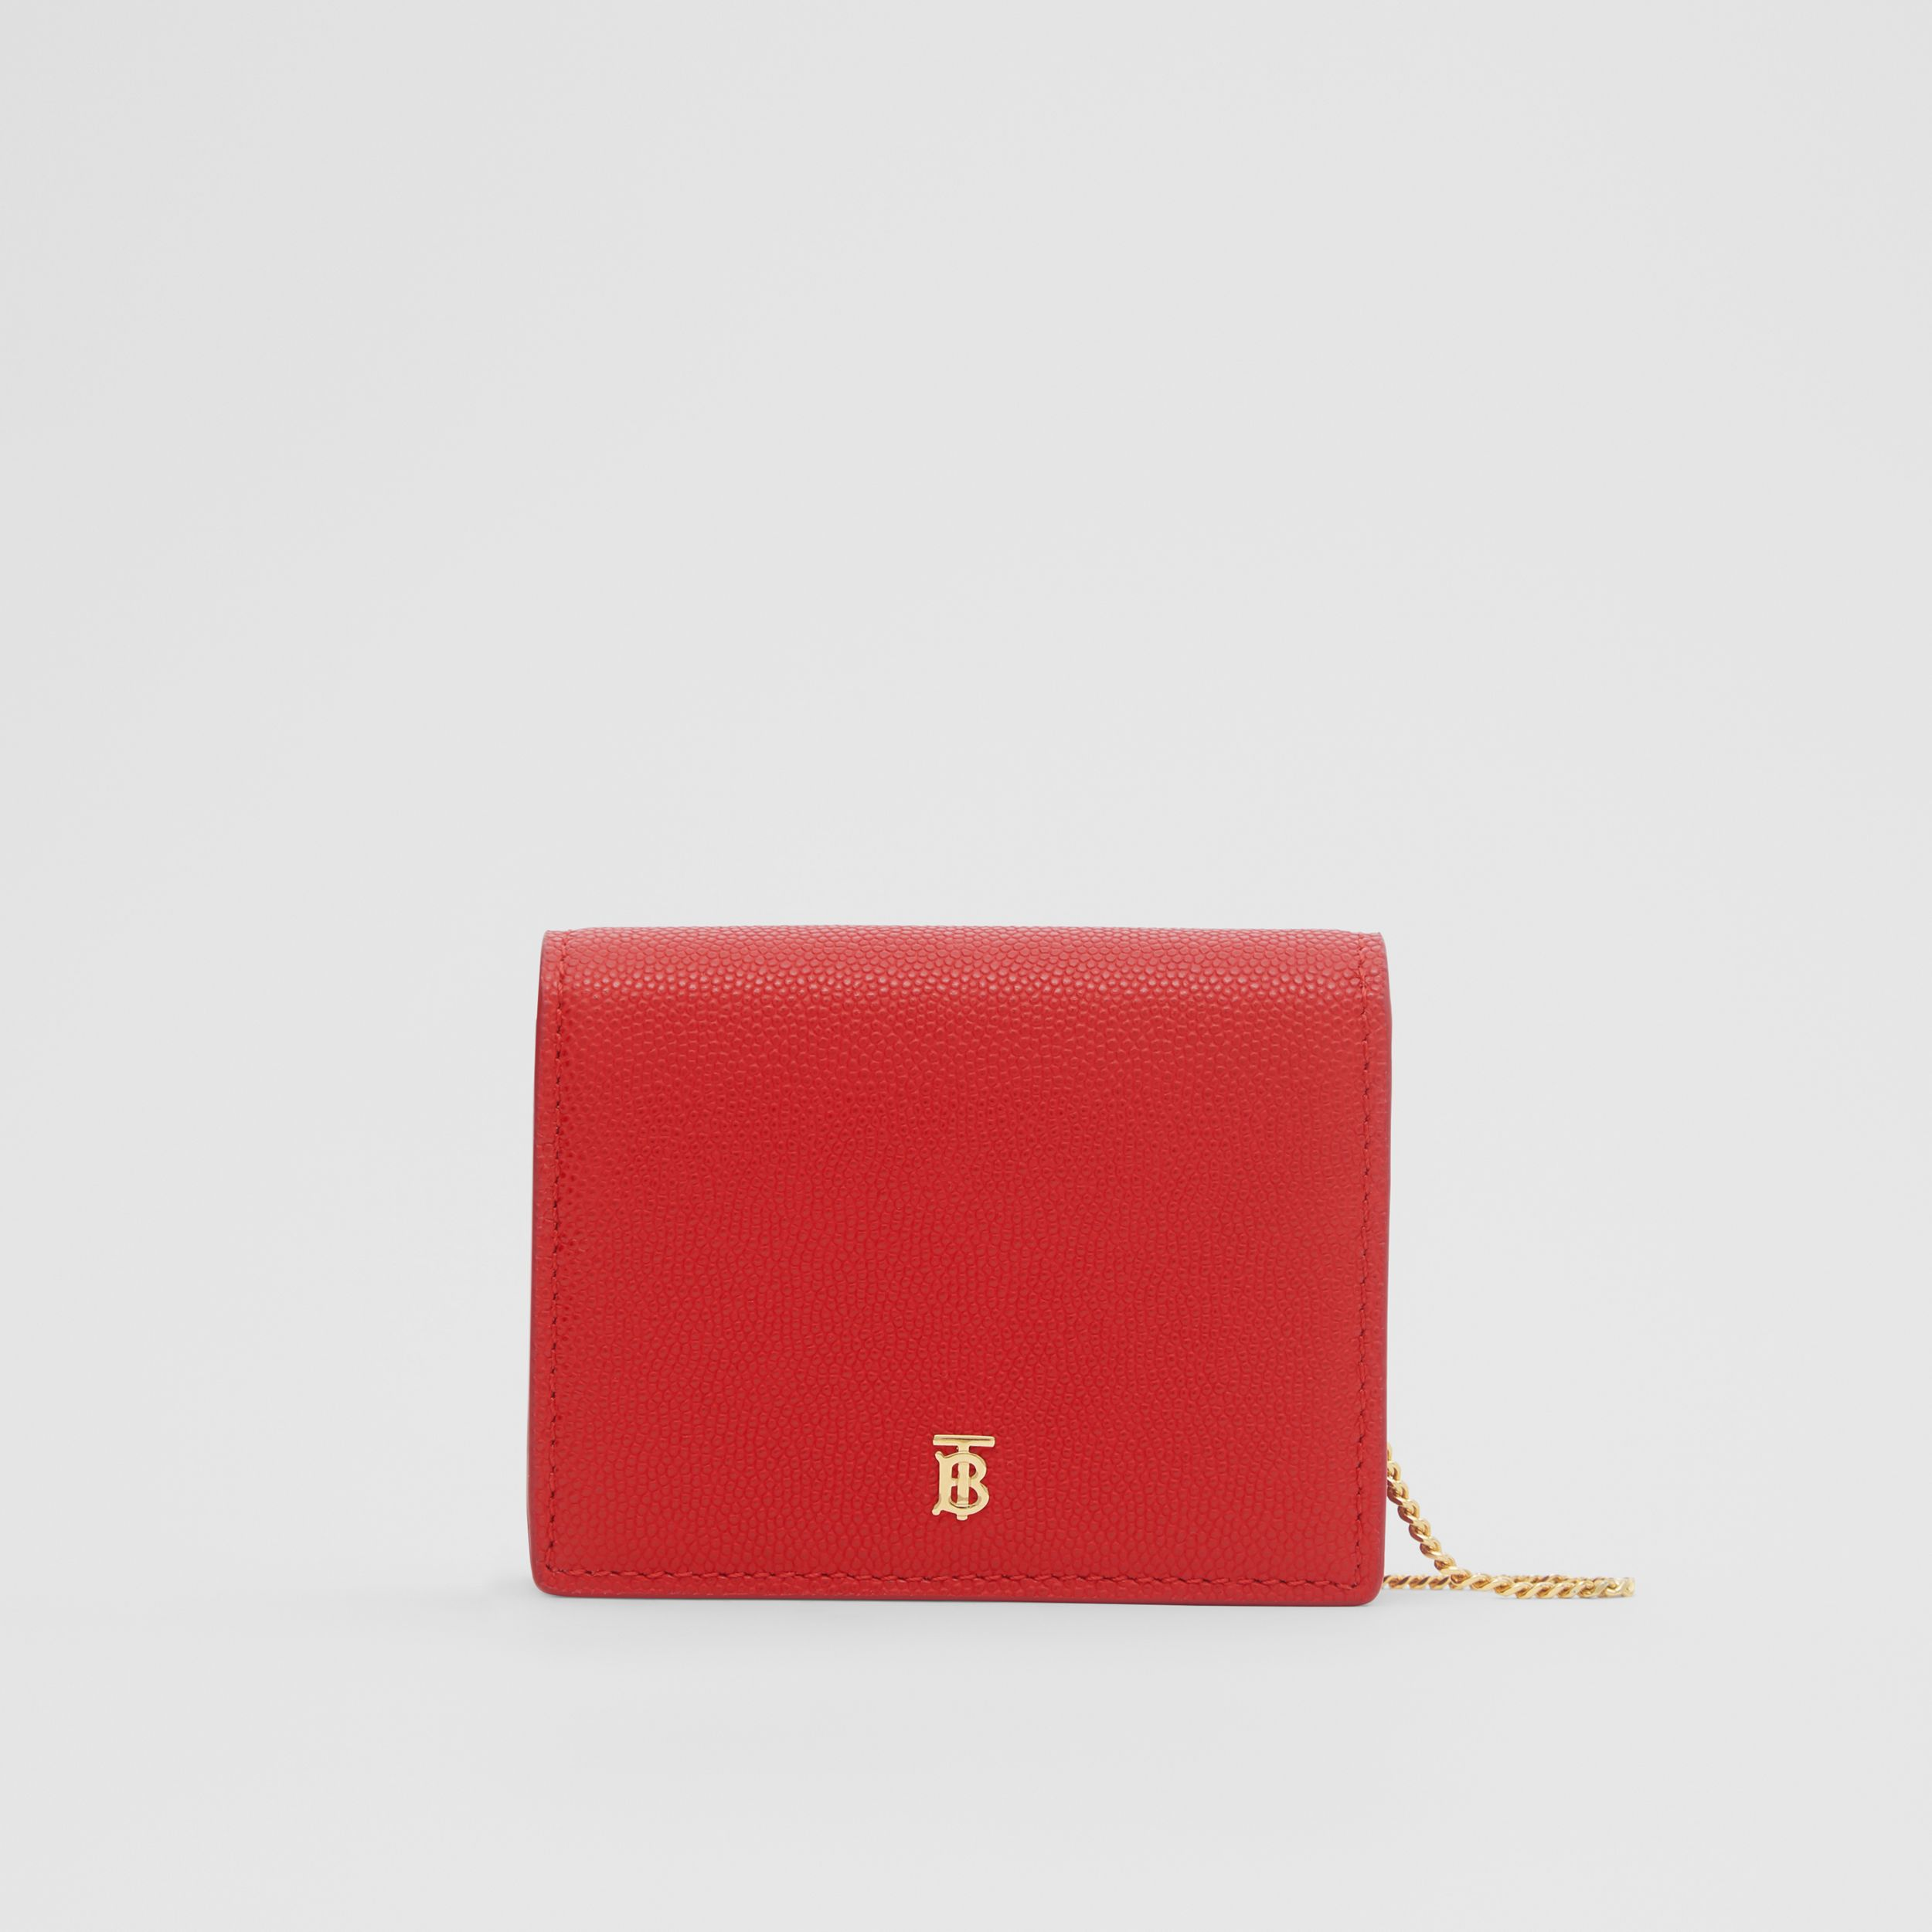 Grainy Leather Card Case with Detachable Strap in Bright Red - Women | Burberry - 1